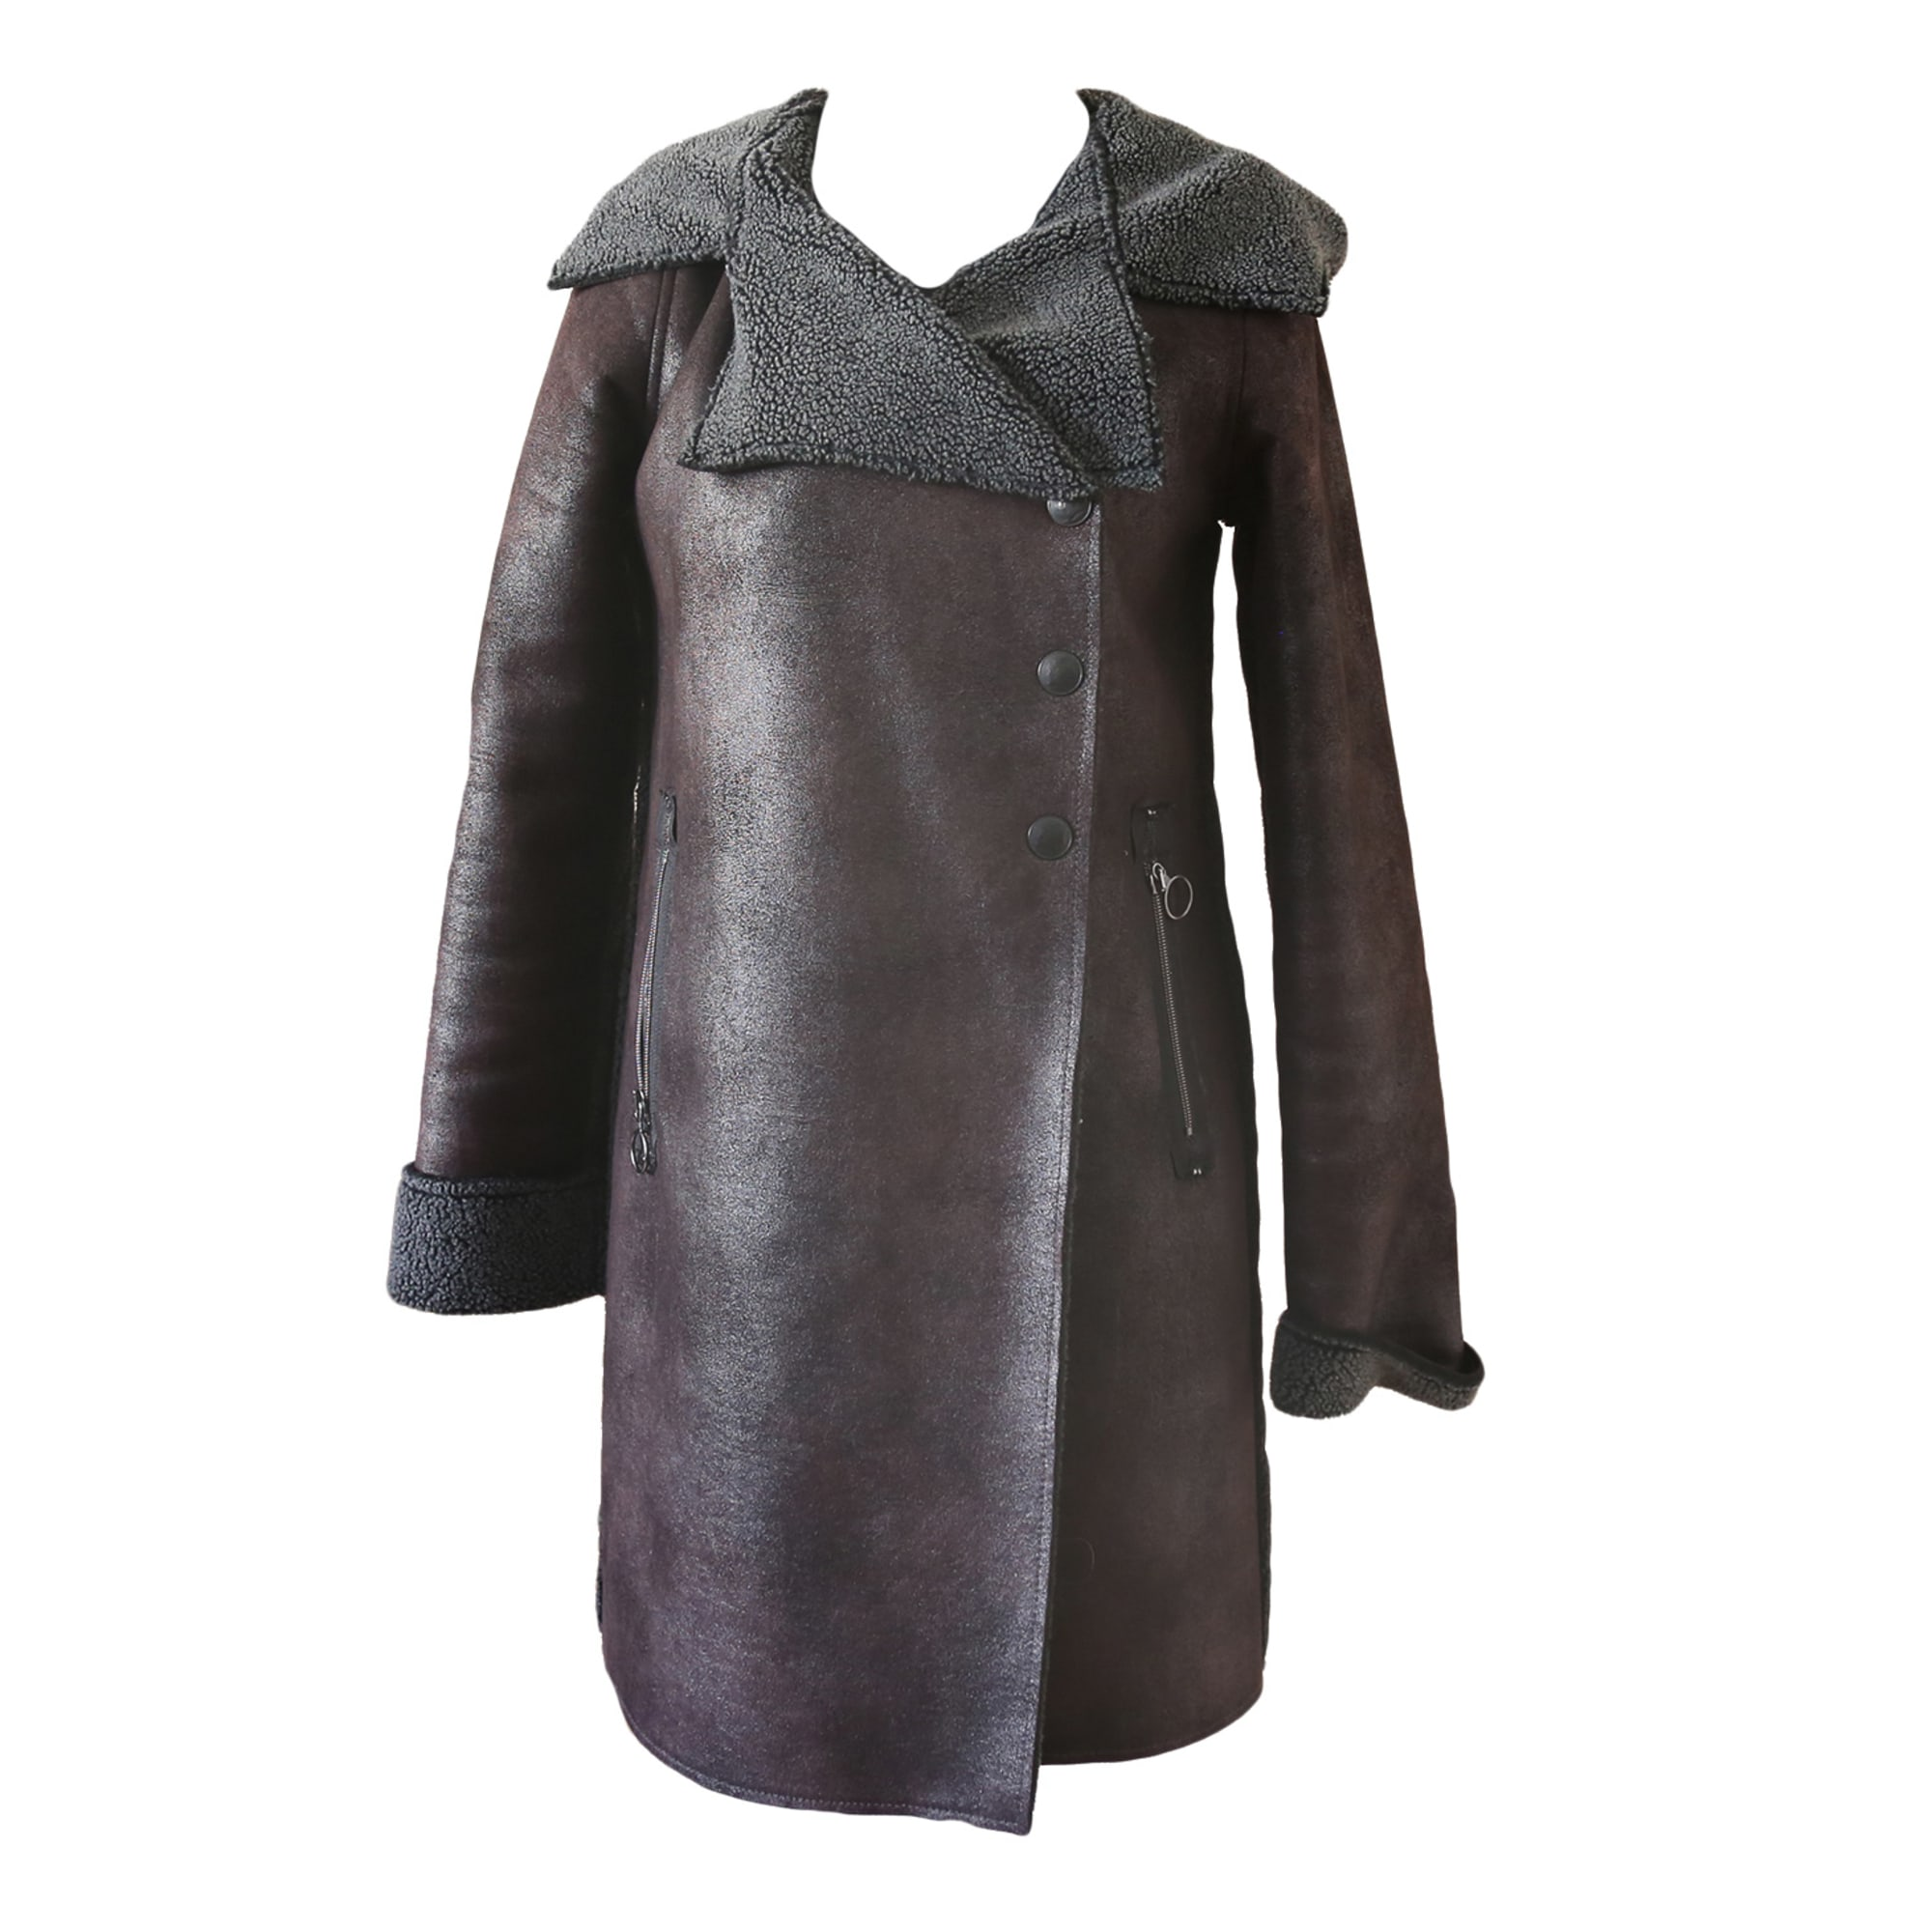 6338489 Manteau Cop Copine 38mT2Marron Vendu Inesshopping Par qSUzMpV